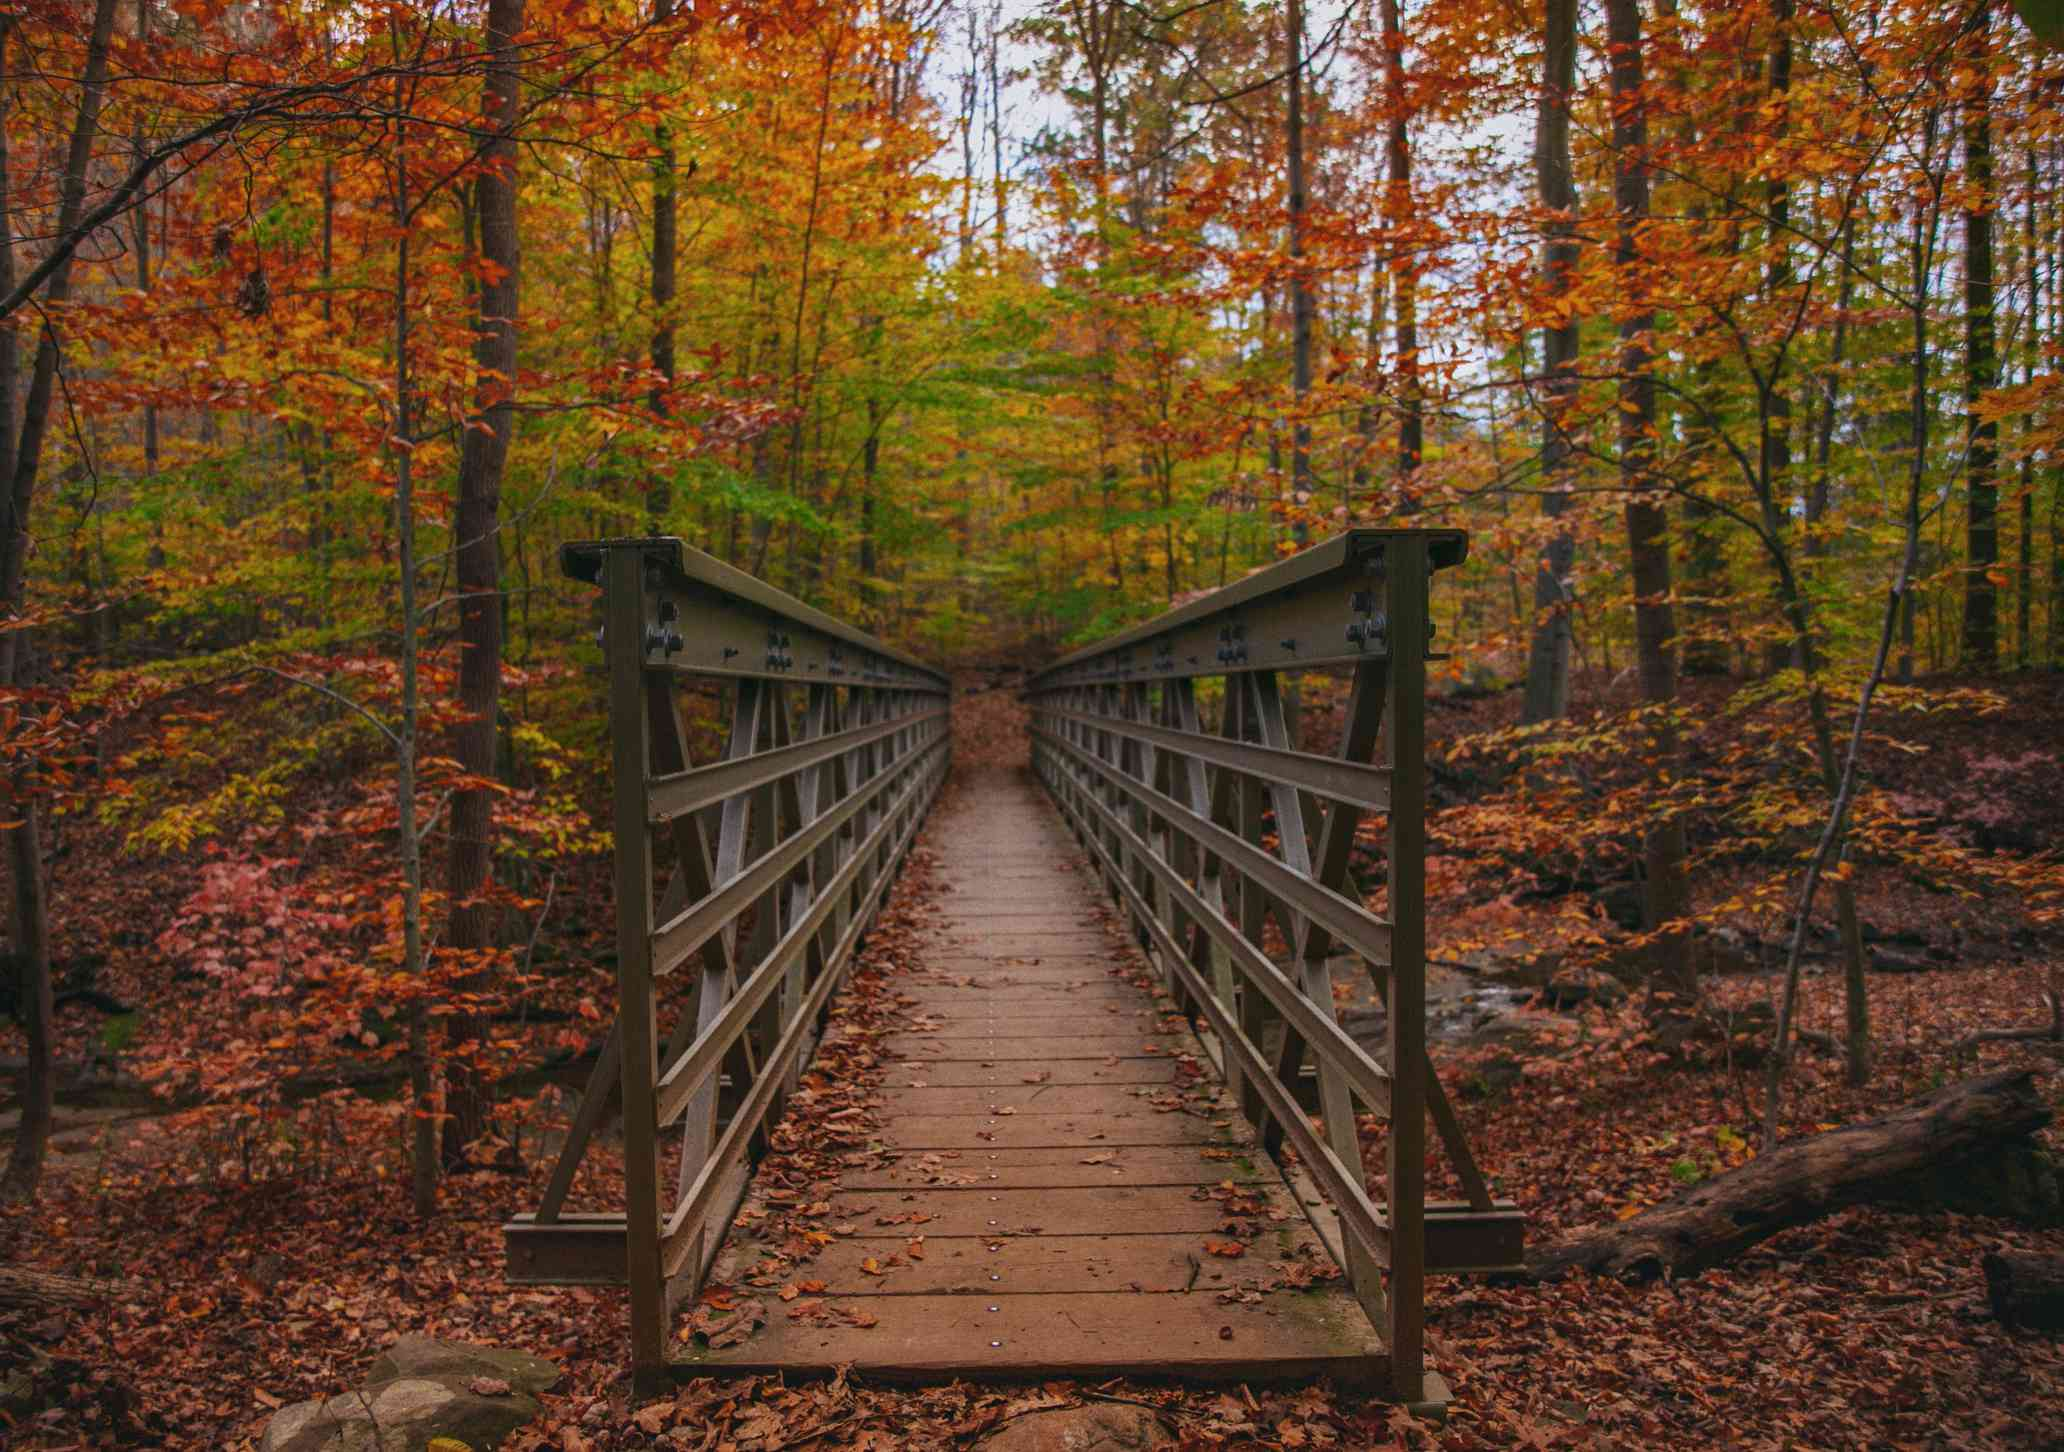 A hike to see the fall colors in Ohio